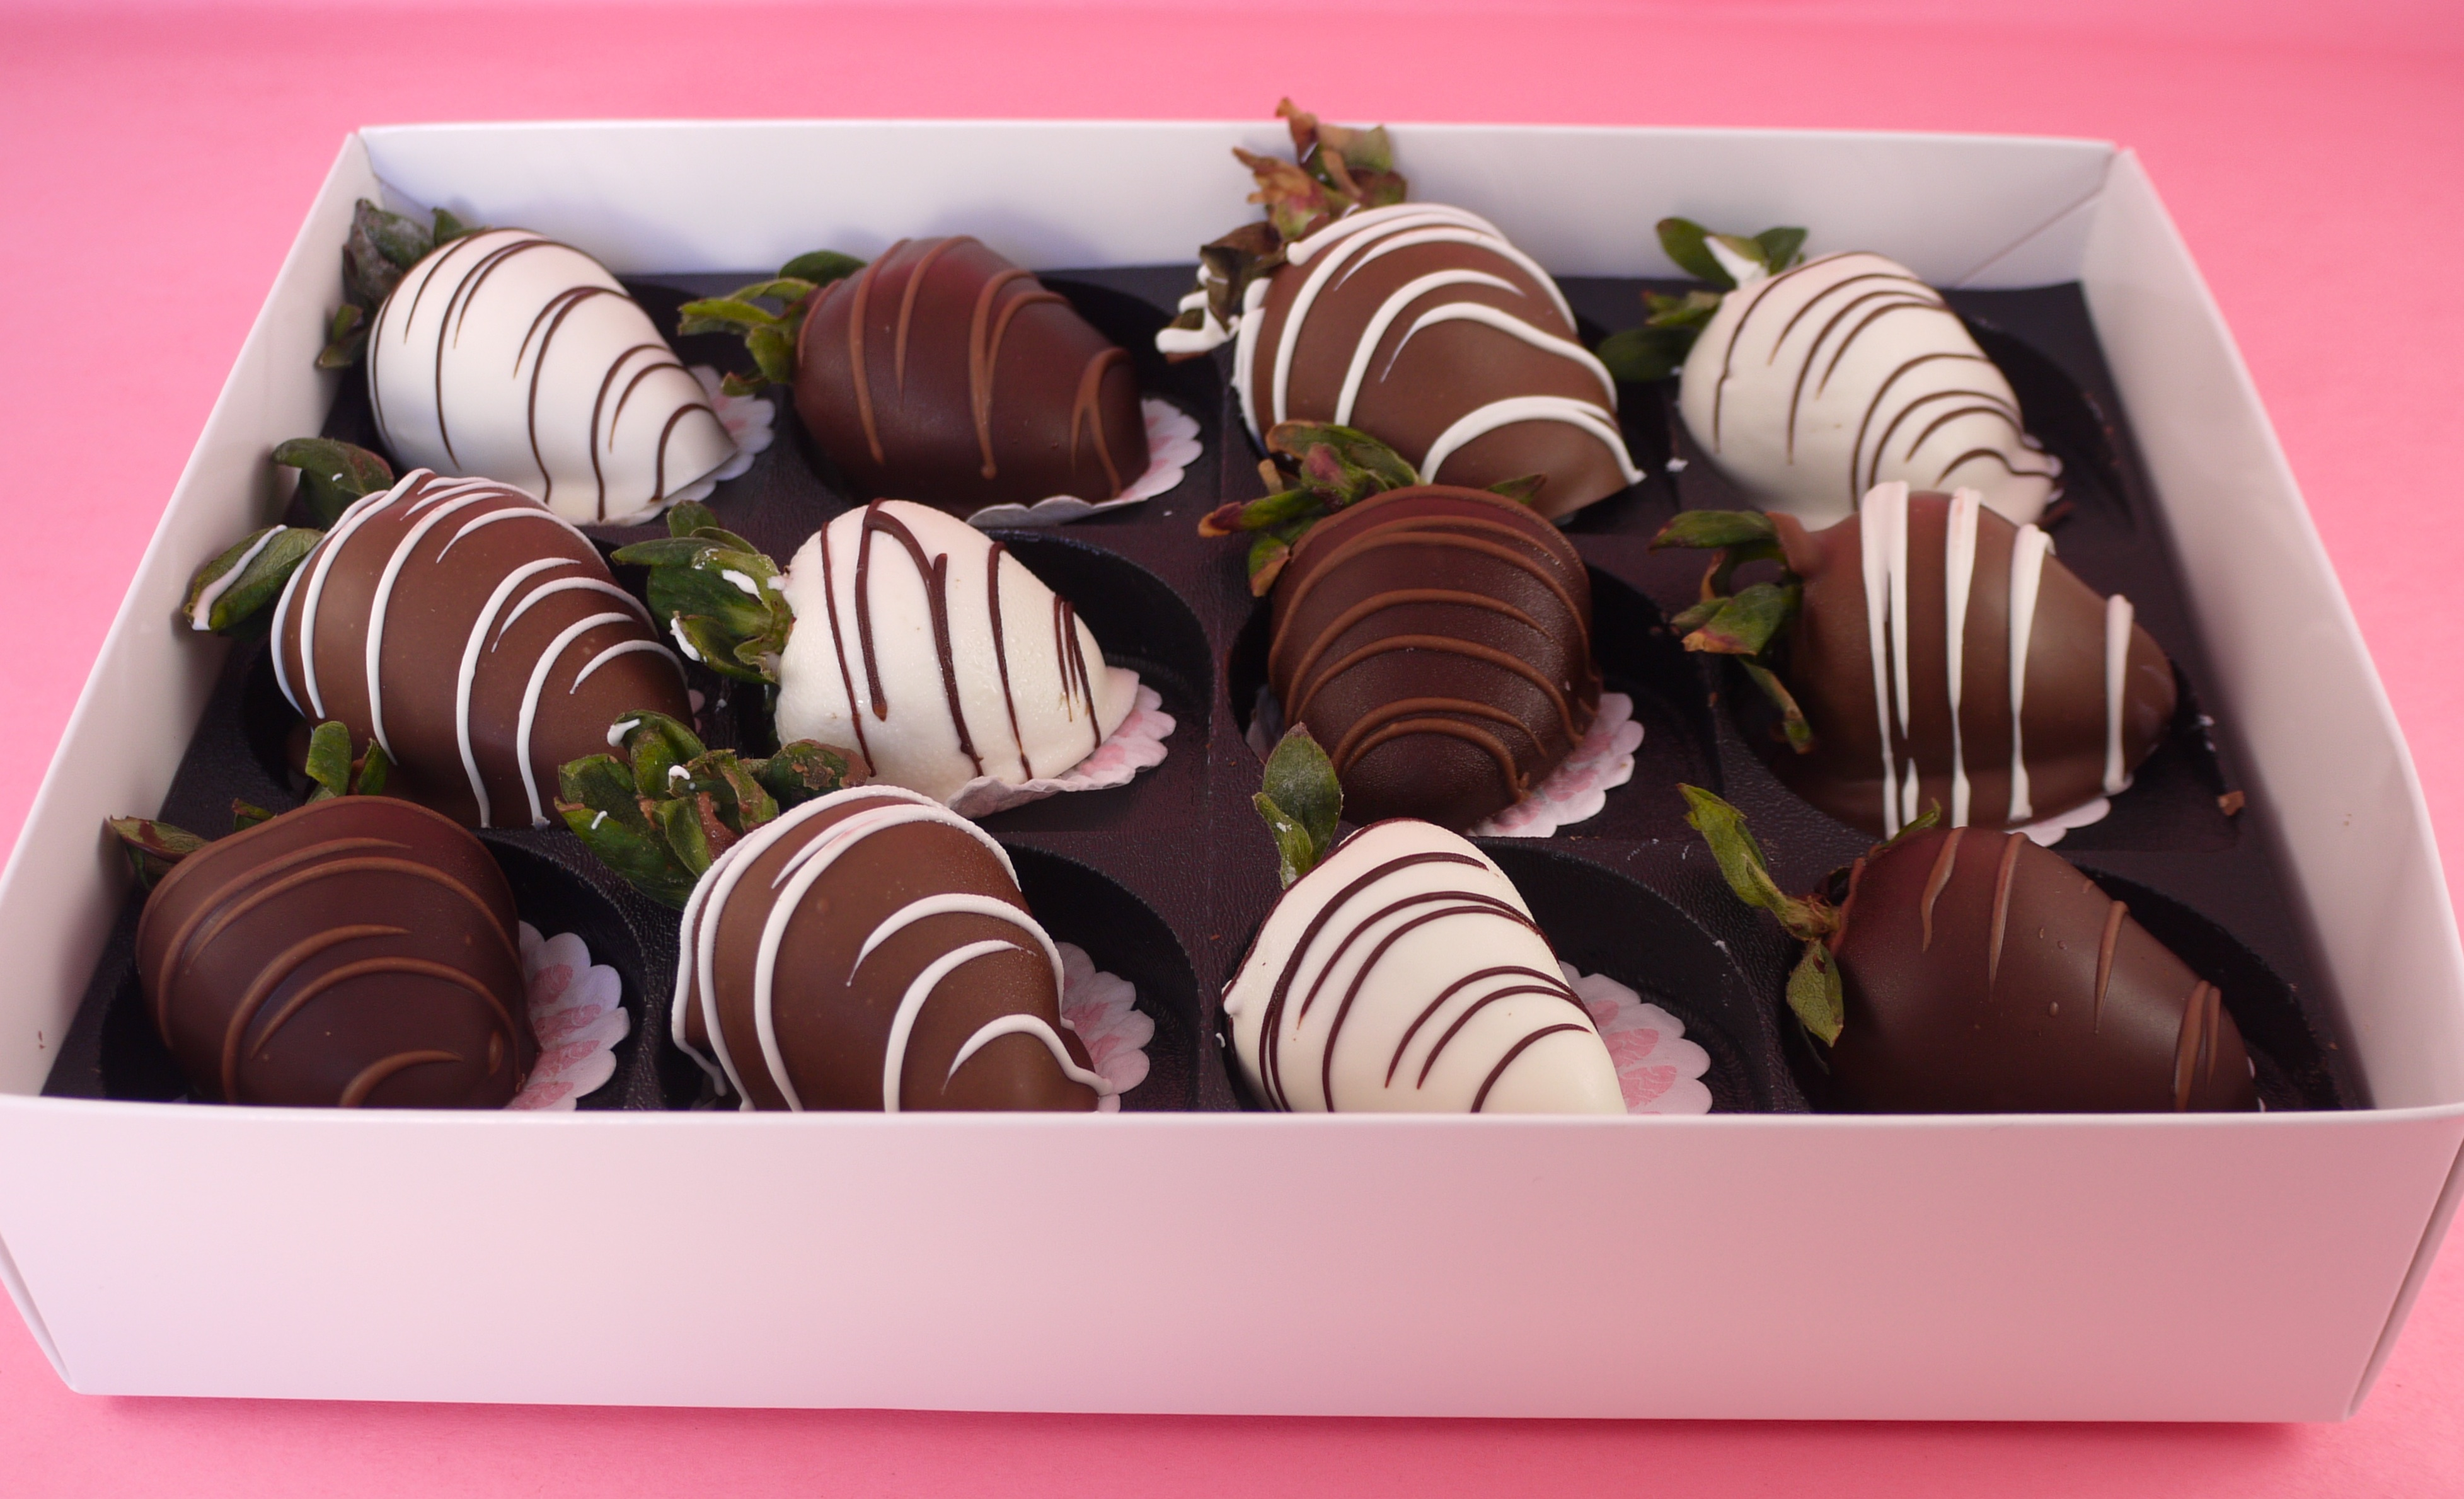 Shari S Berries Chocolate Dipped Strawberries For A